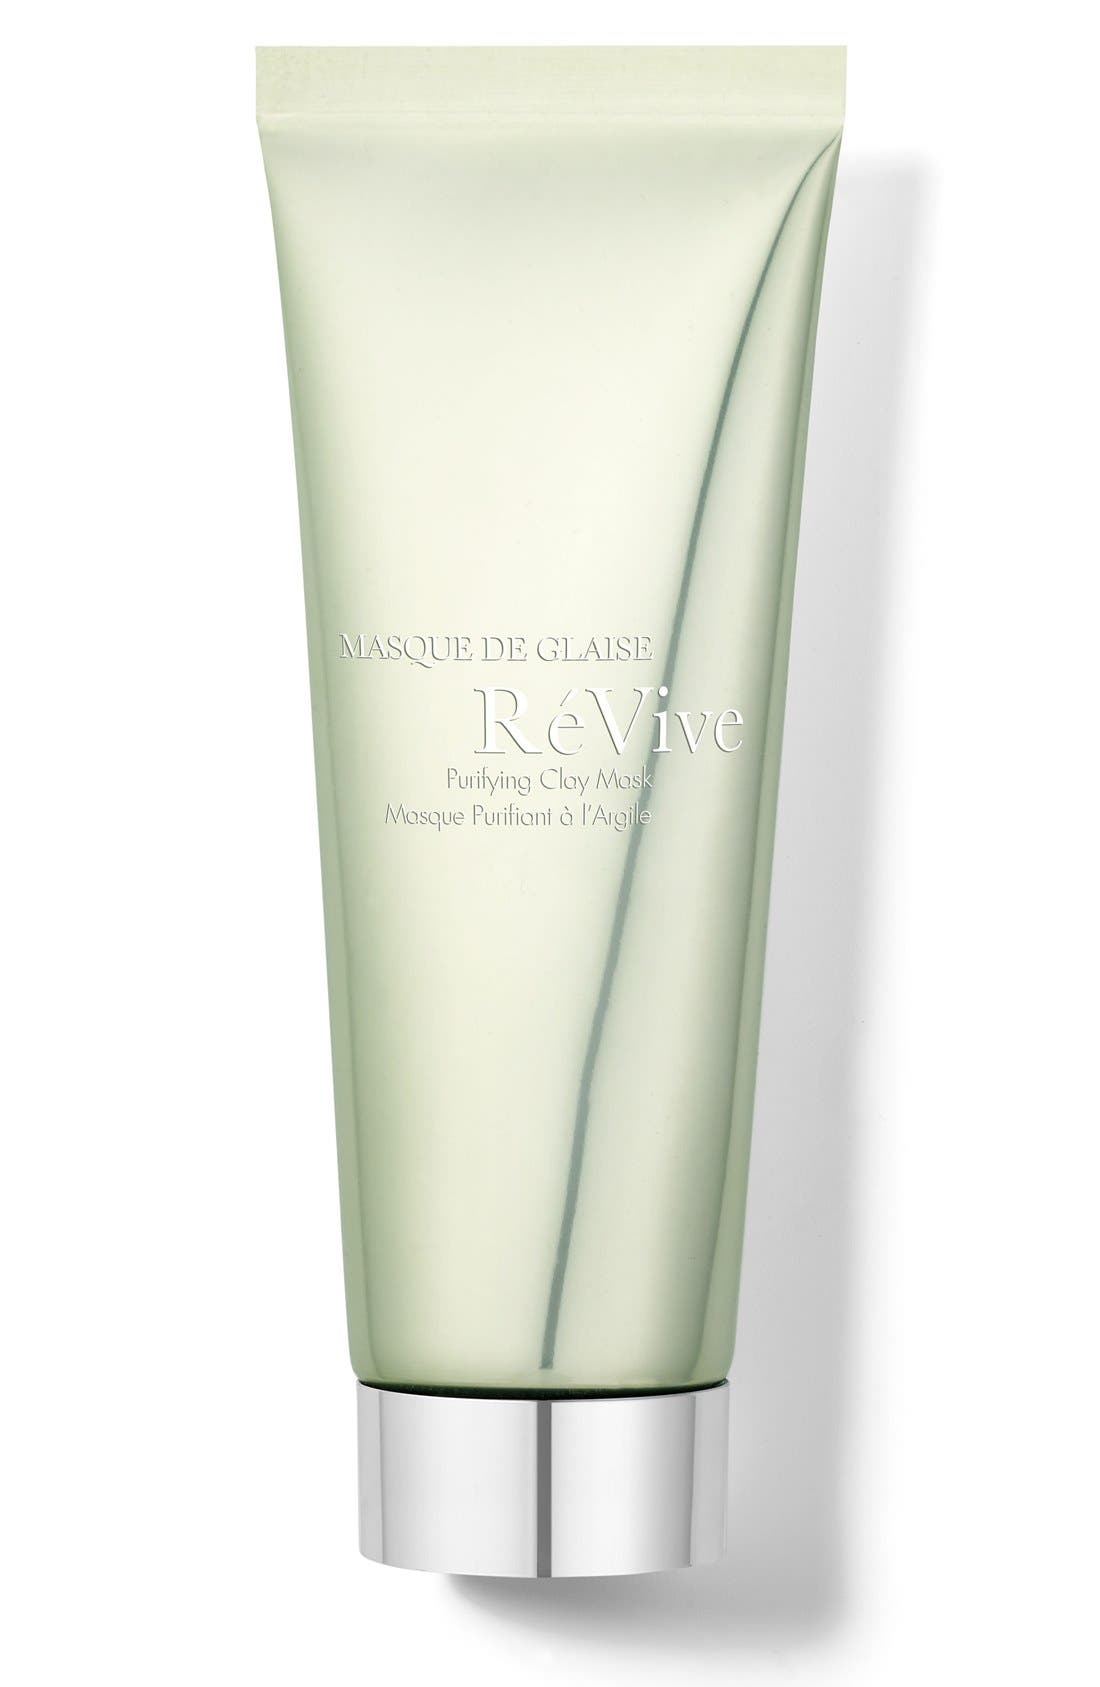 RéVive® Masque de Glaise Purifying Clay Mask